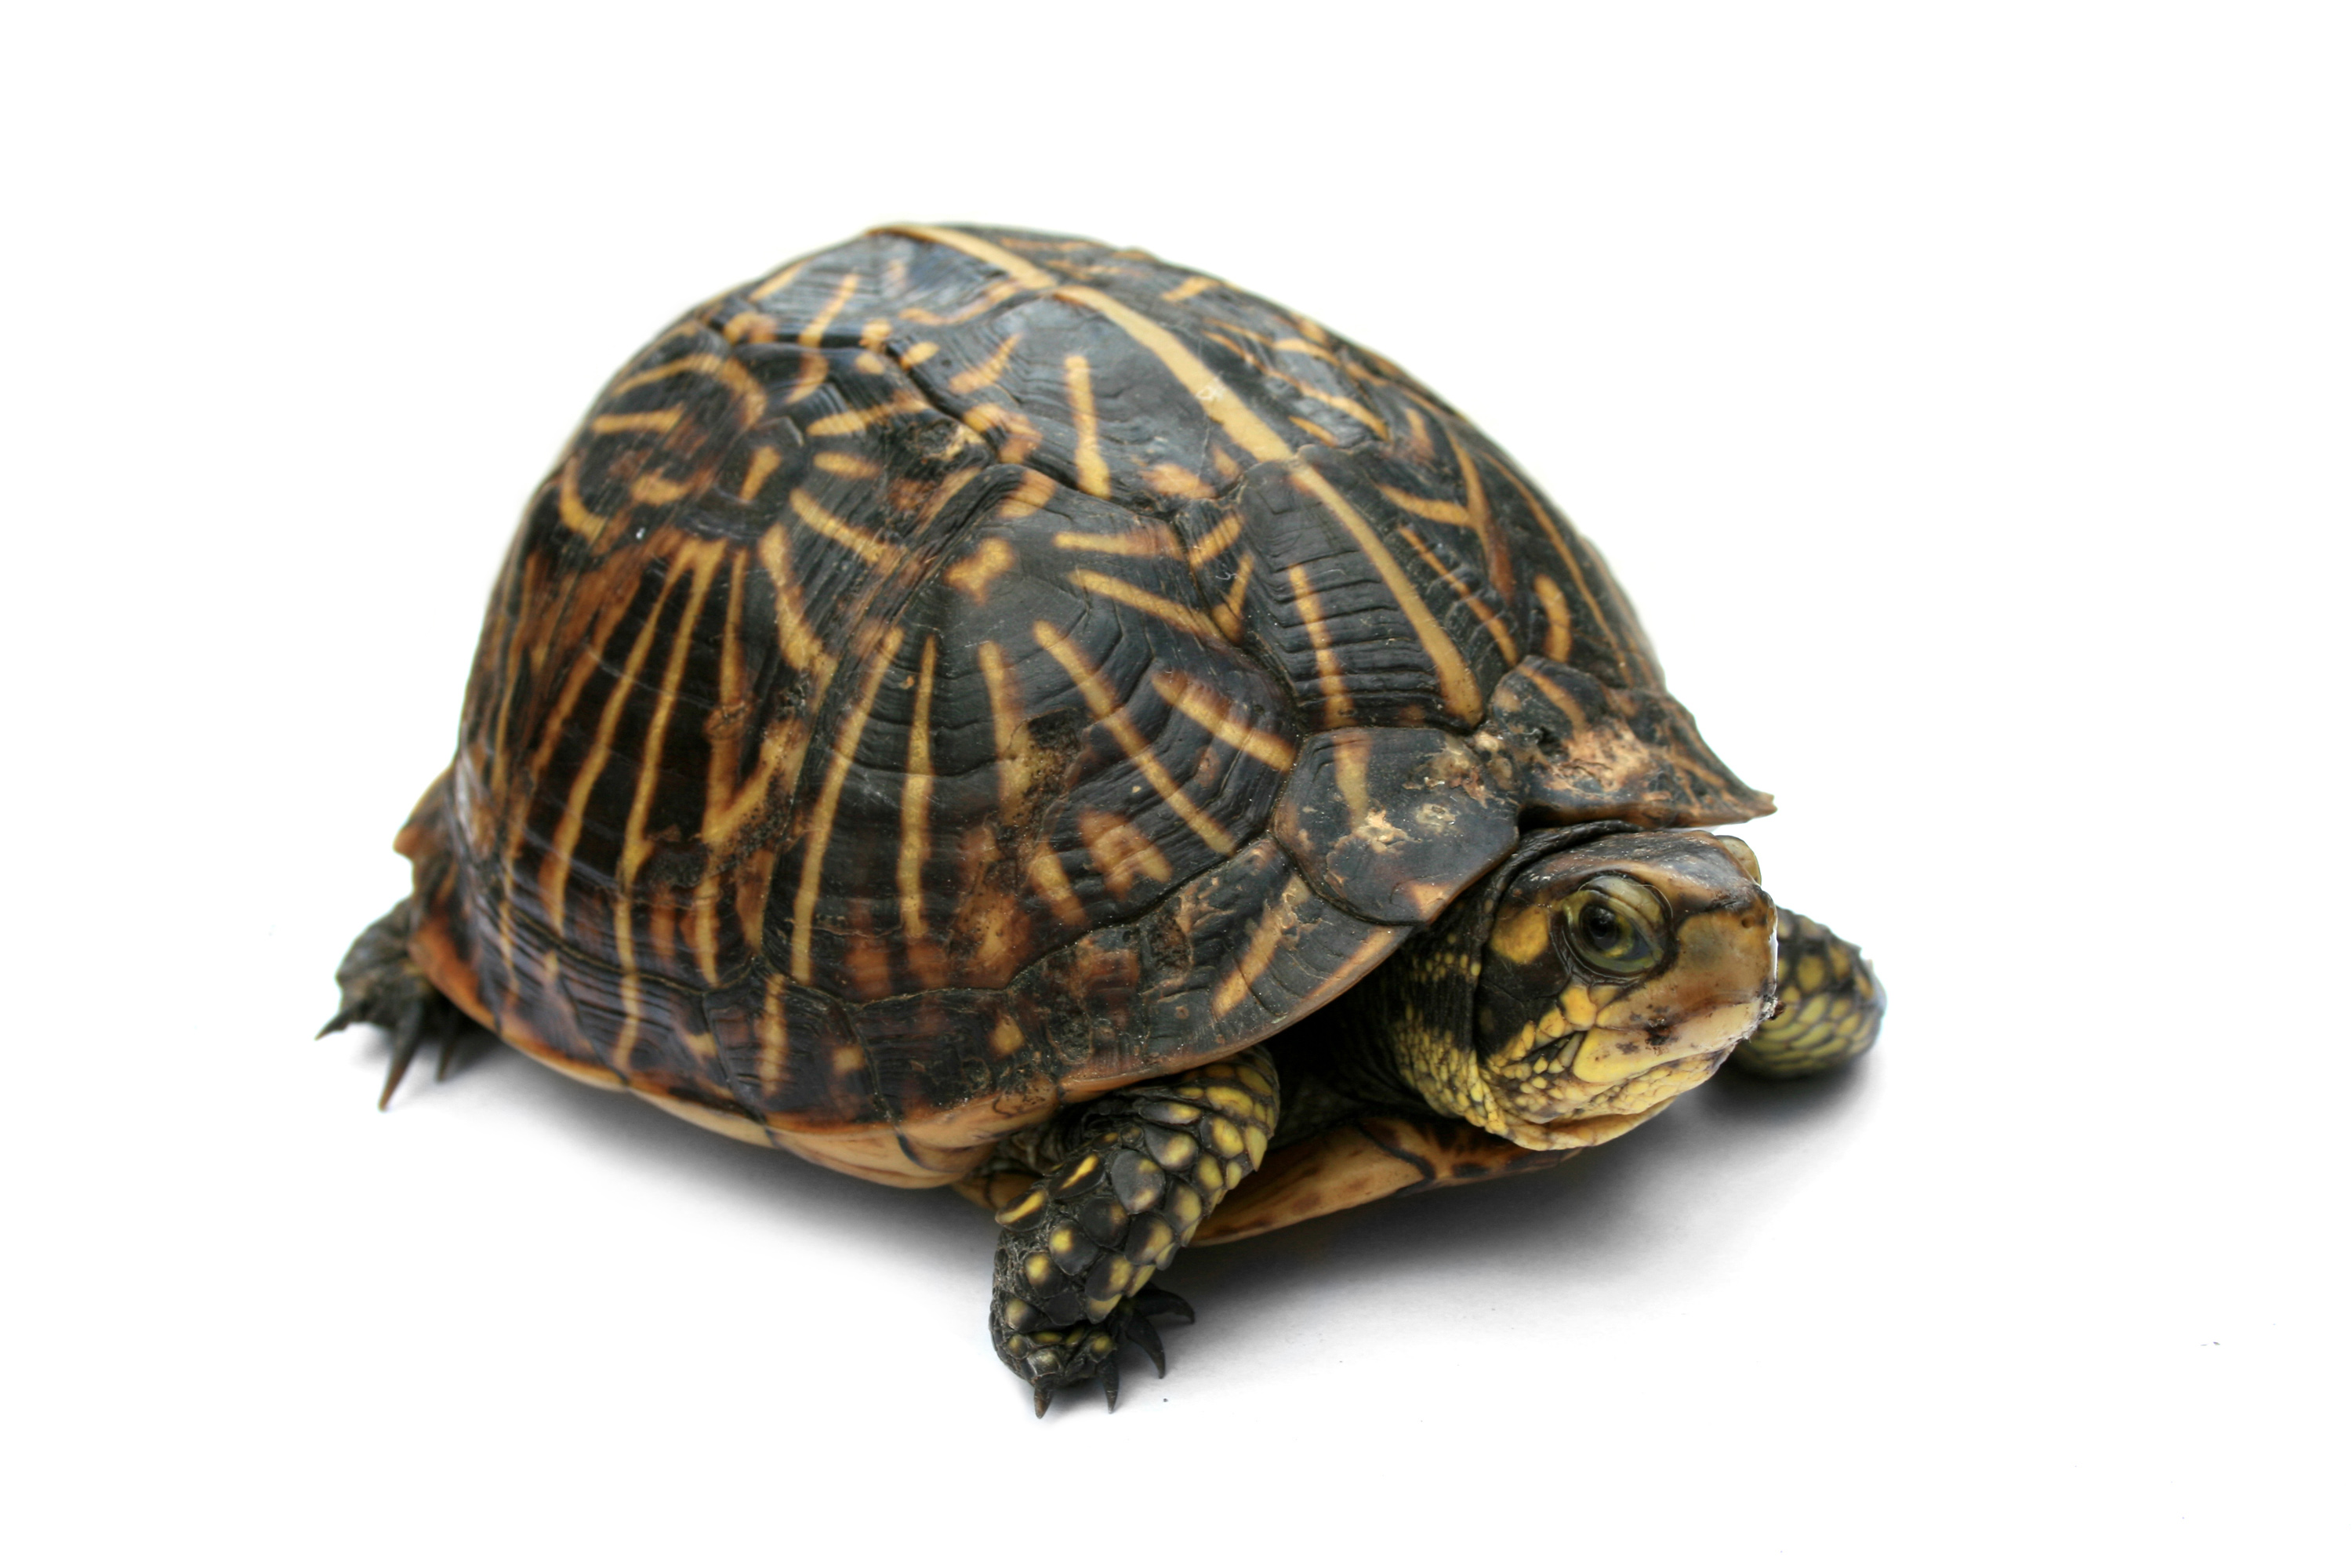 Turtle 11 - Turtle Shell PNG HD